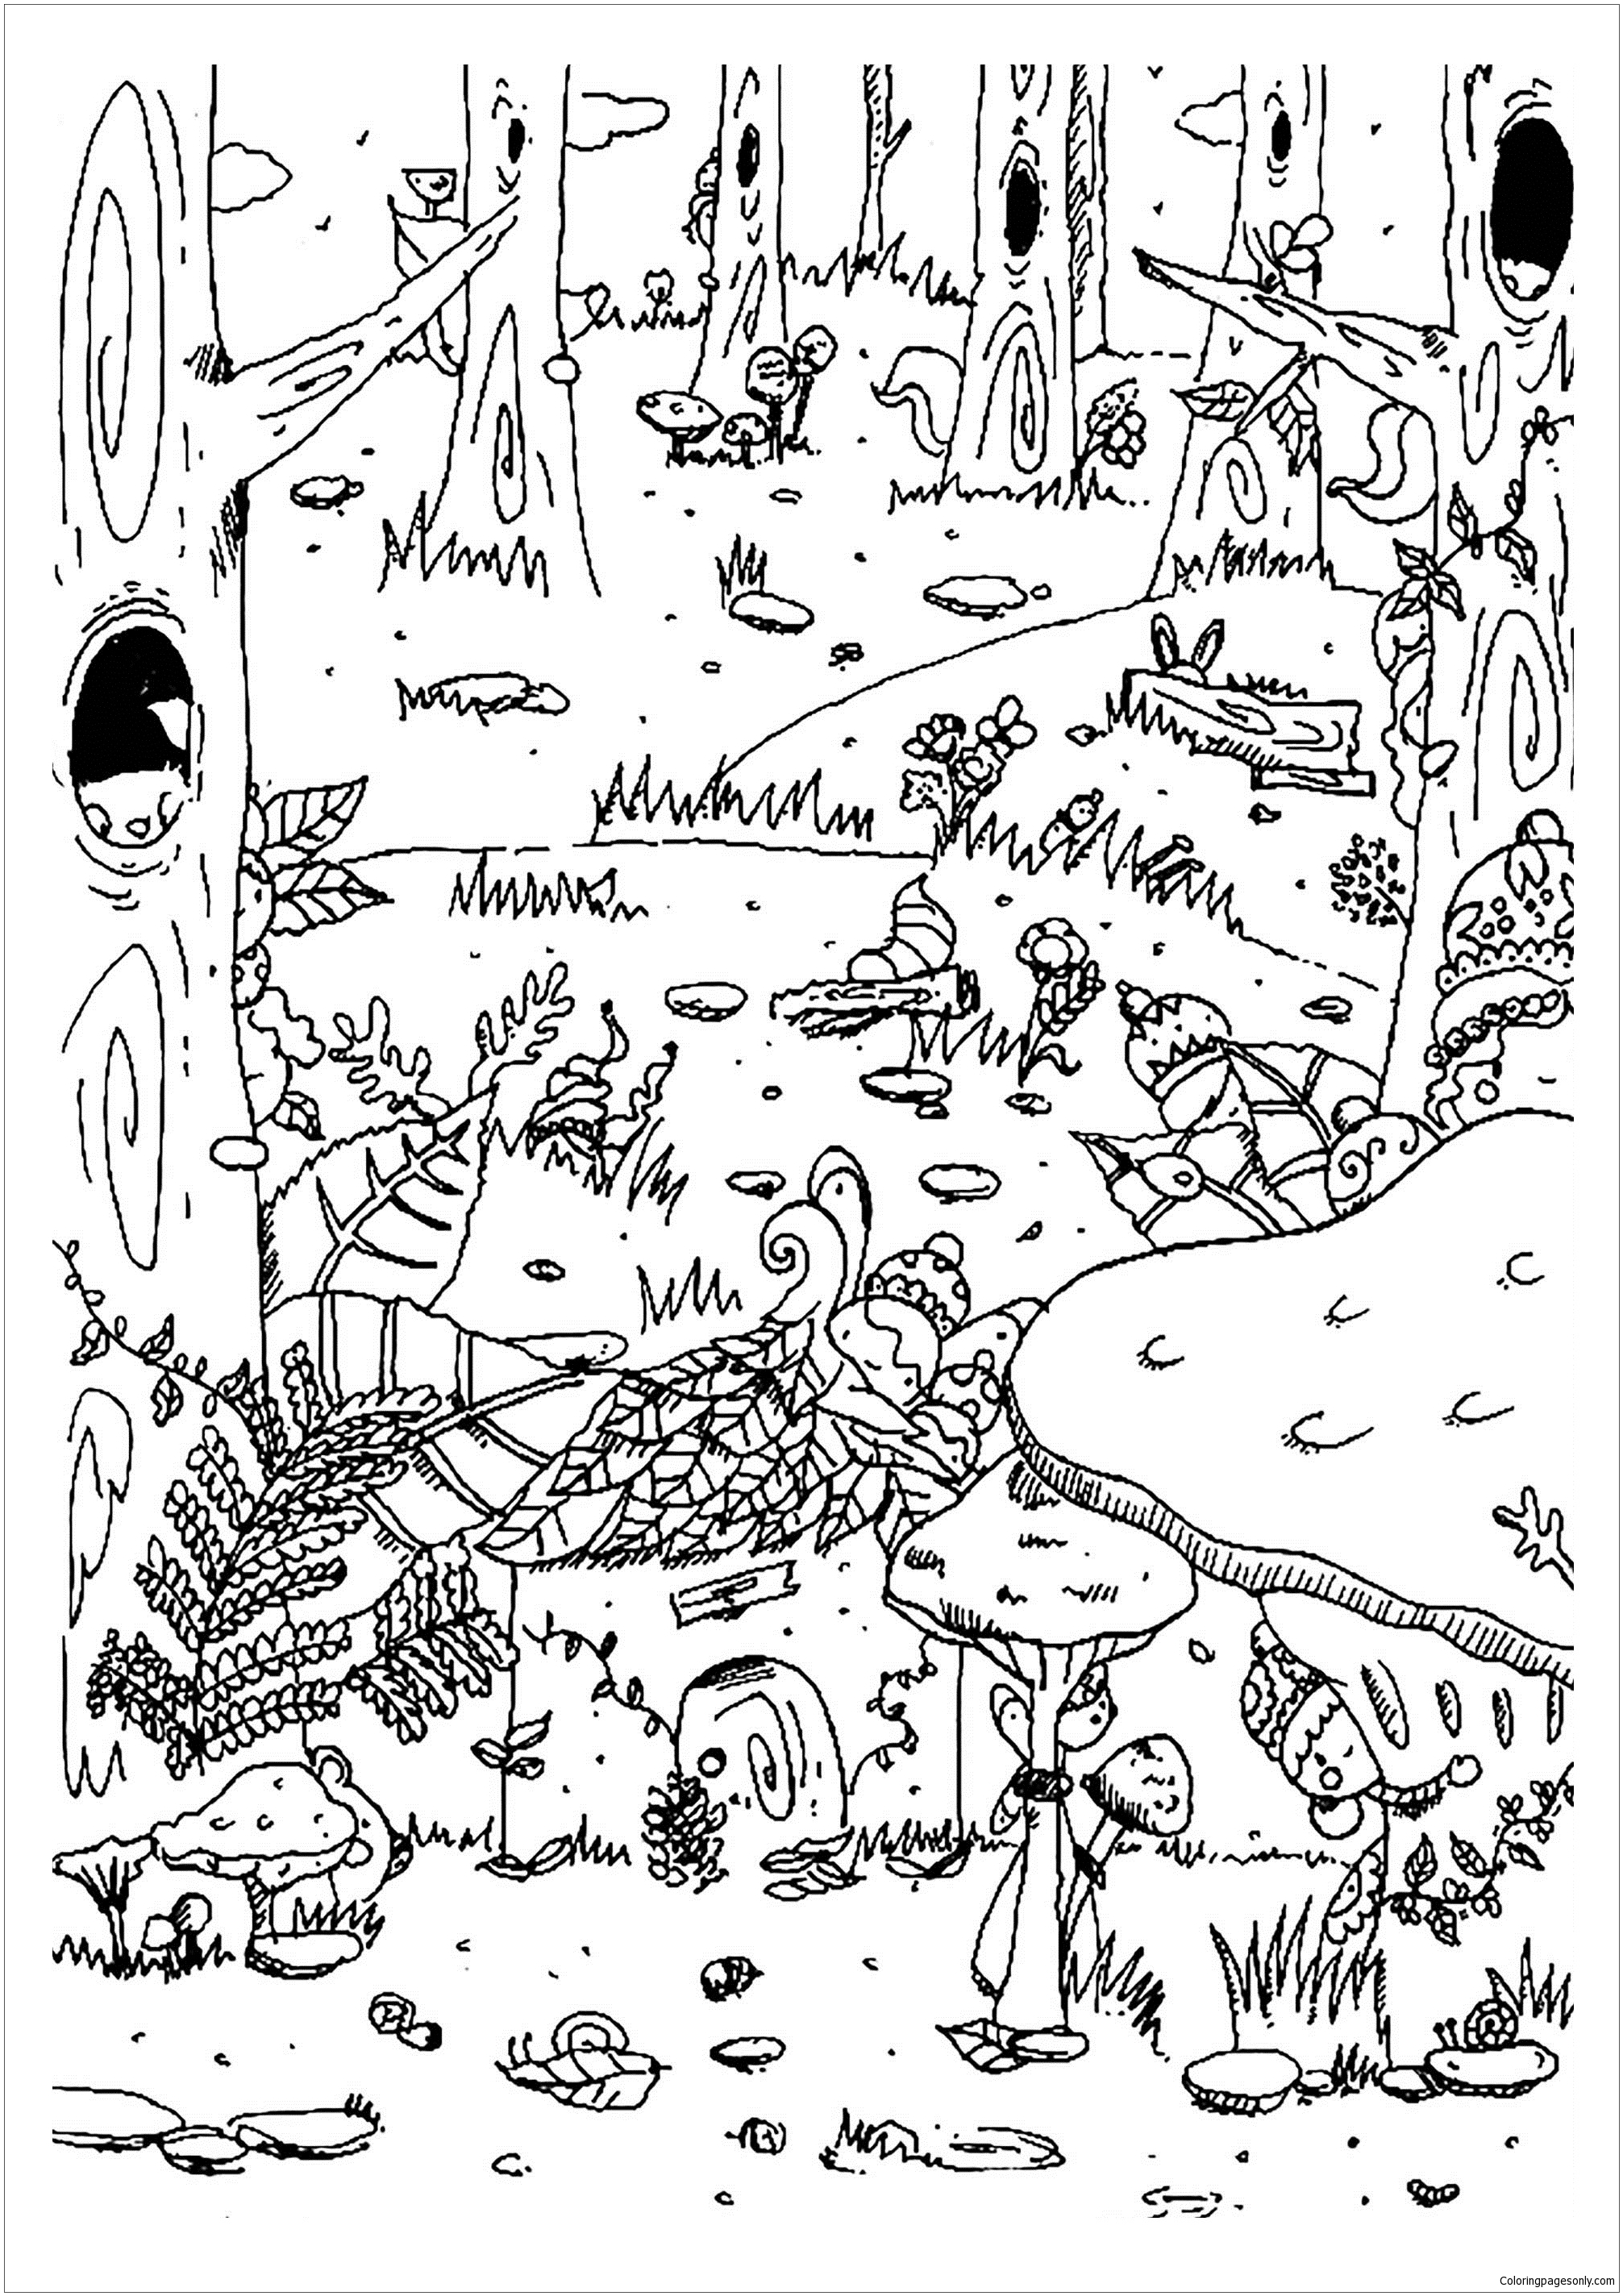 Enchanted forest Coloring Page - Free Coloring Pages Online